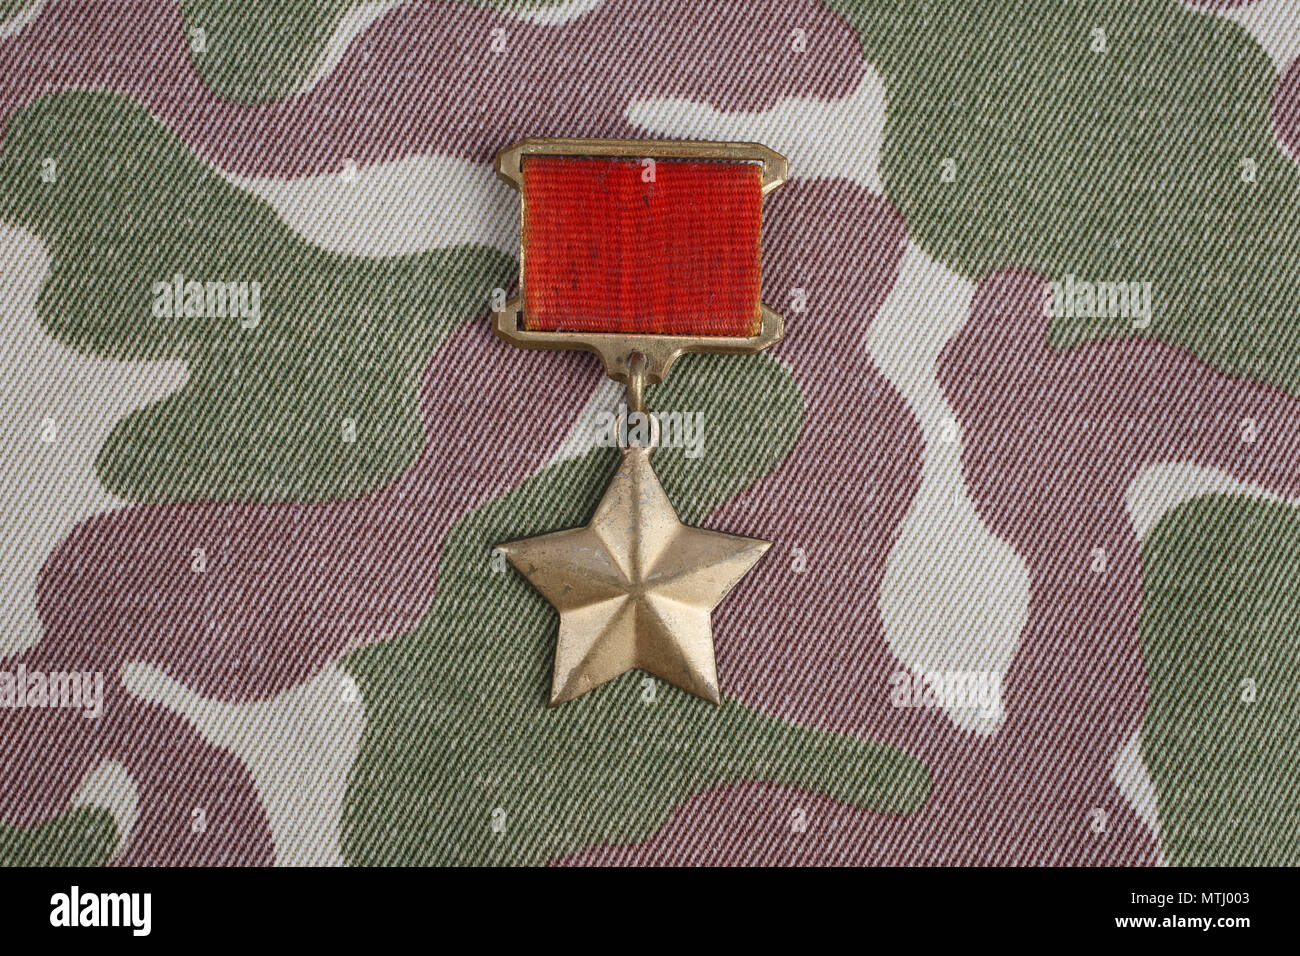 The title of Hero of the Soviet Union was awarded posthumously to General Karbyshev (28 fe 28